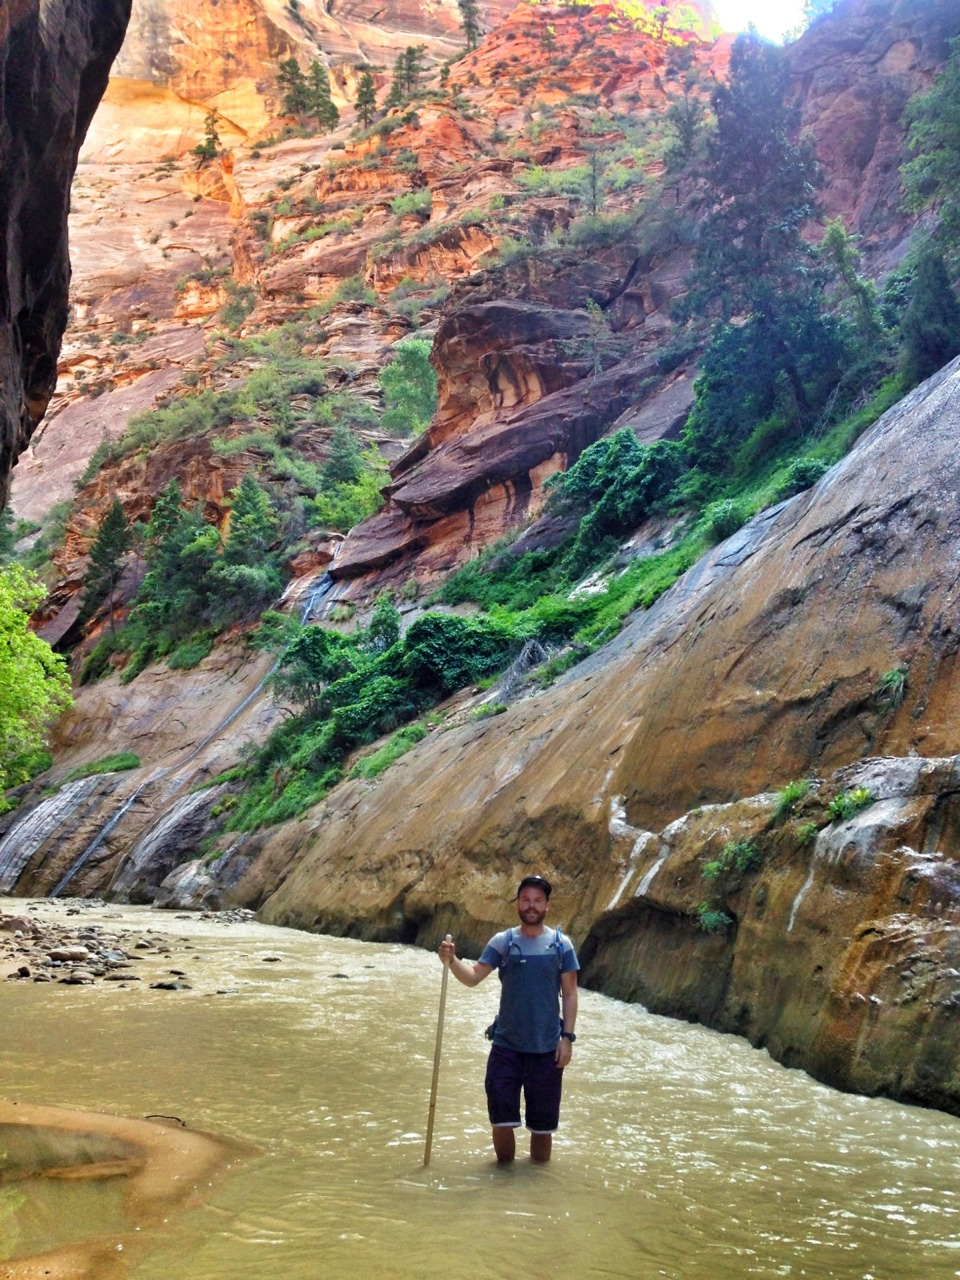 Hikes up a river through The Narrows of Zion today! Hands down one of the best experiences of my life.